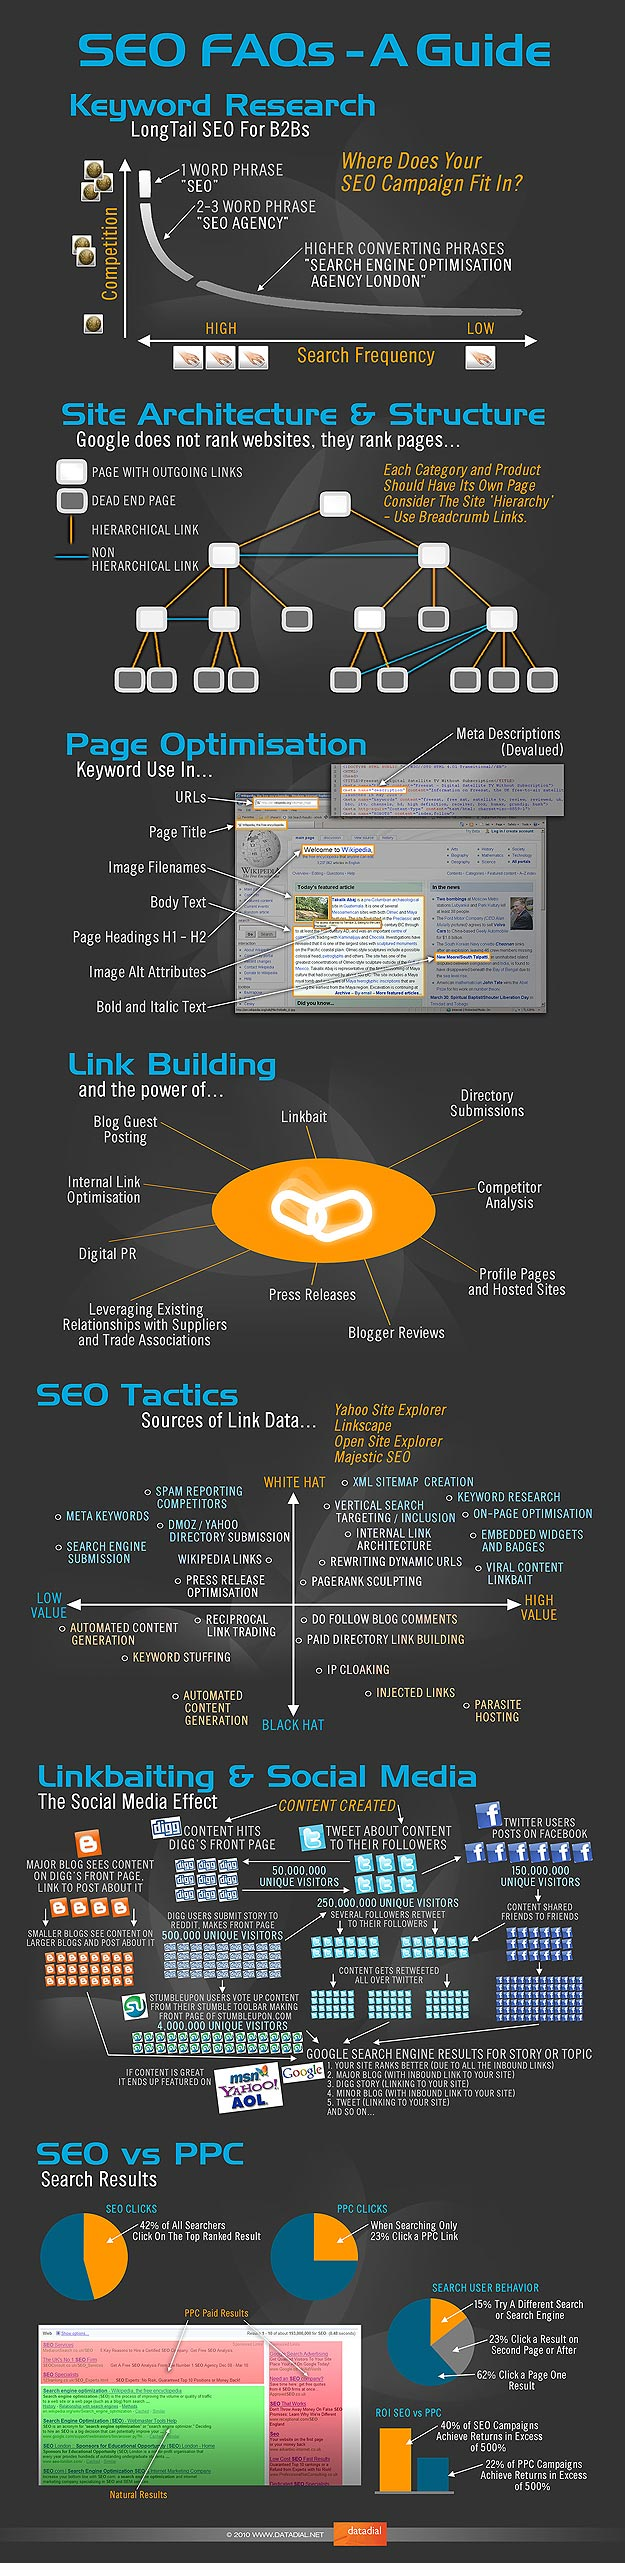 SEO For Dummies: A Beginner's Infographic